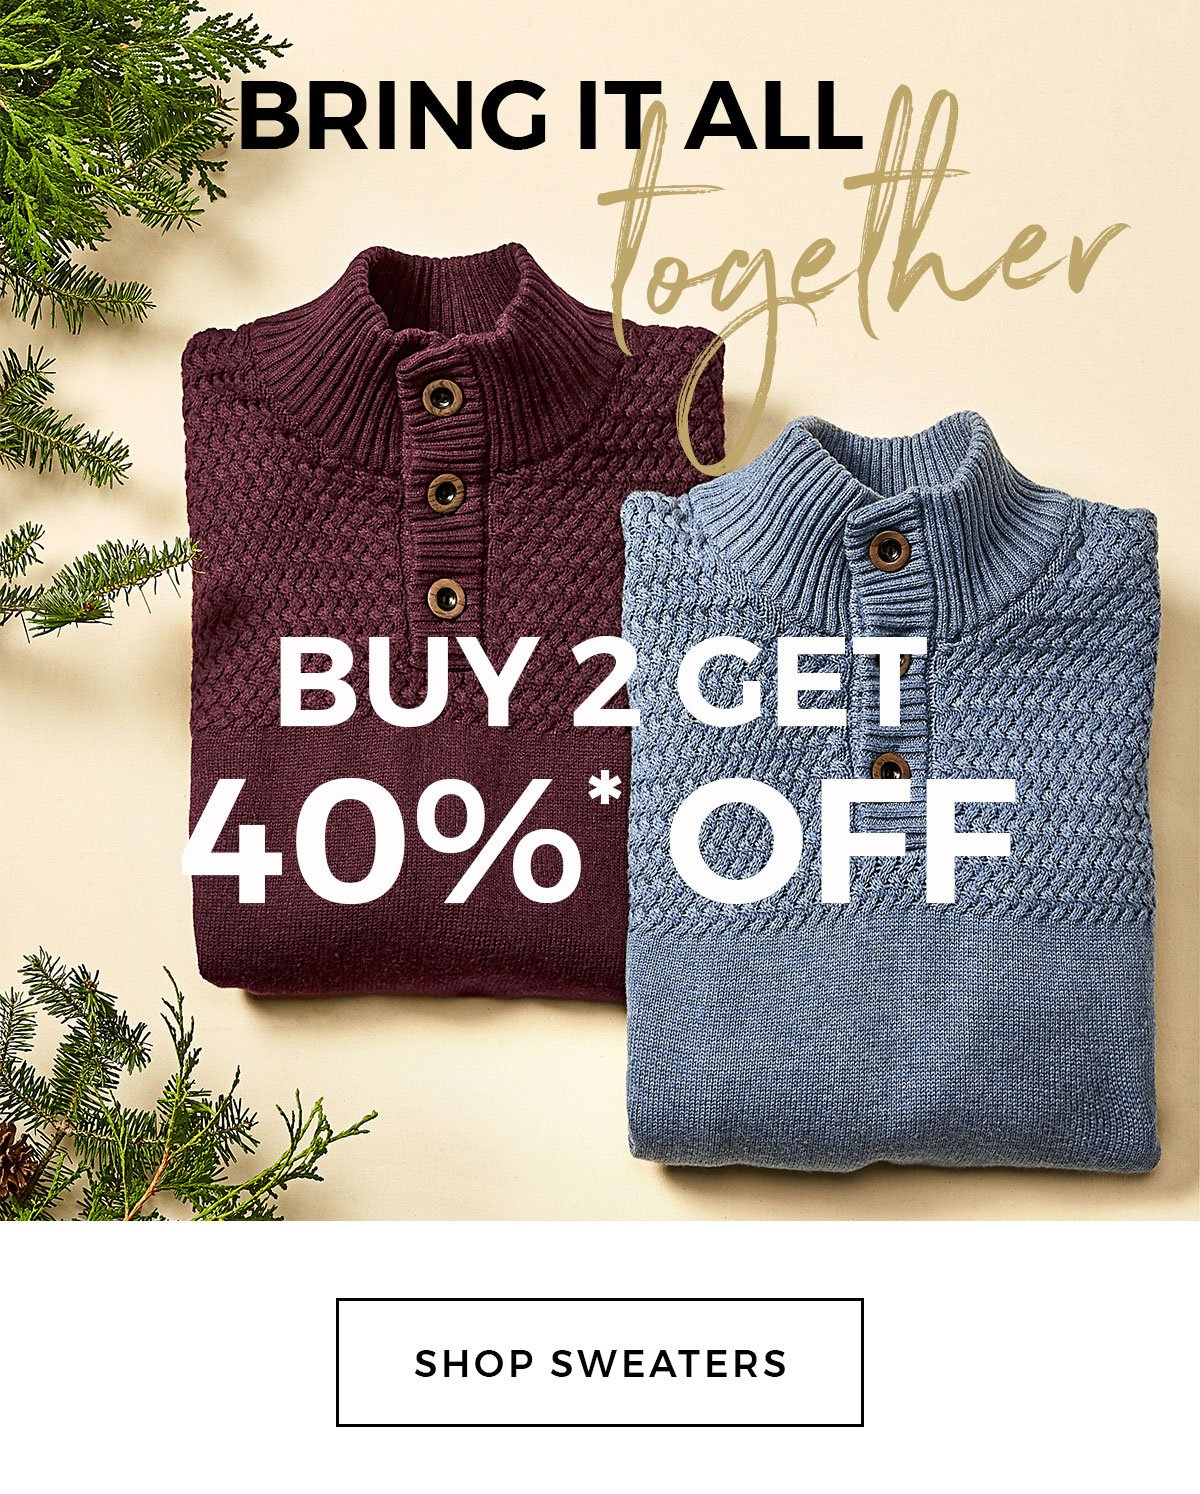 Bring it all together BUY 2 GET 40% OFF SHOP SWEATERS